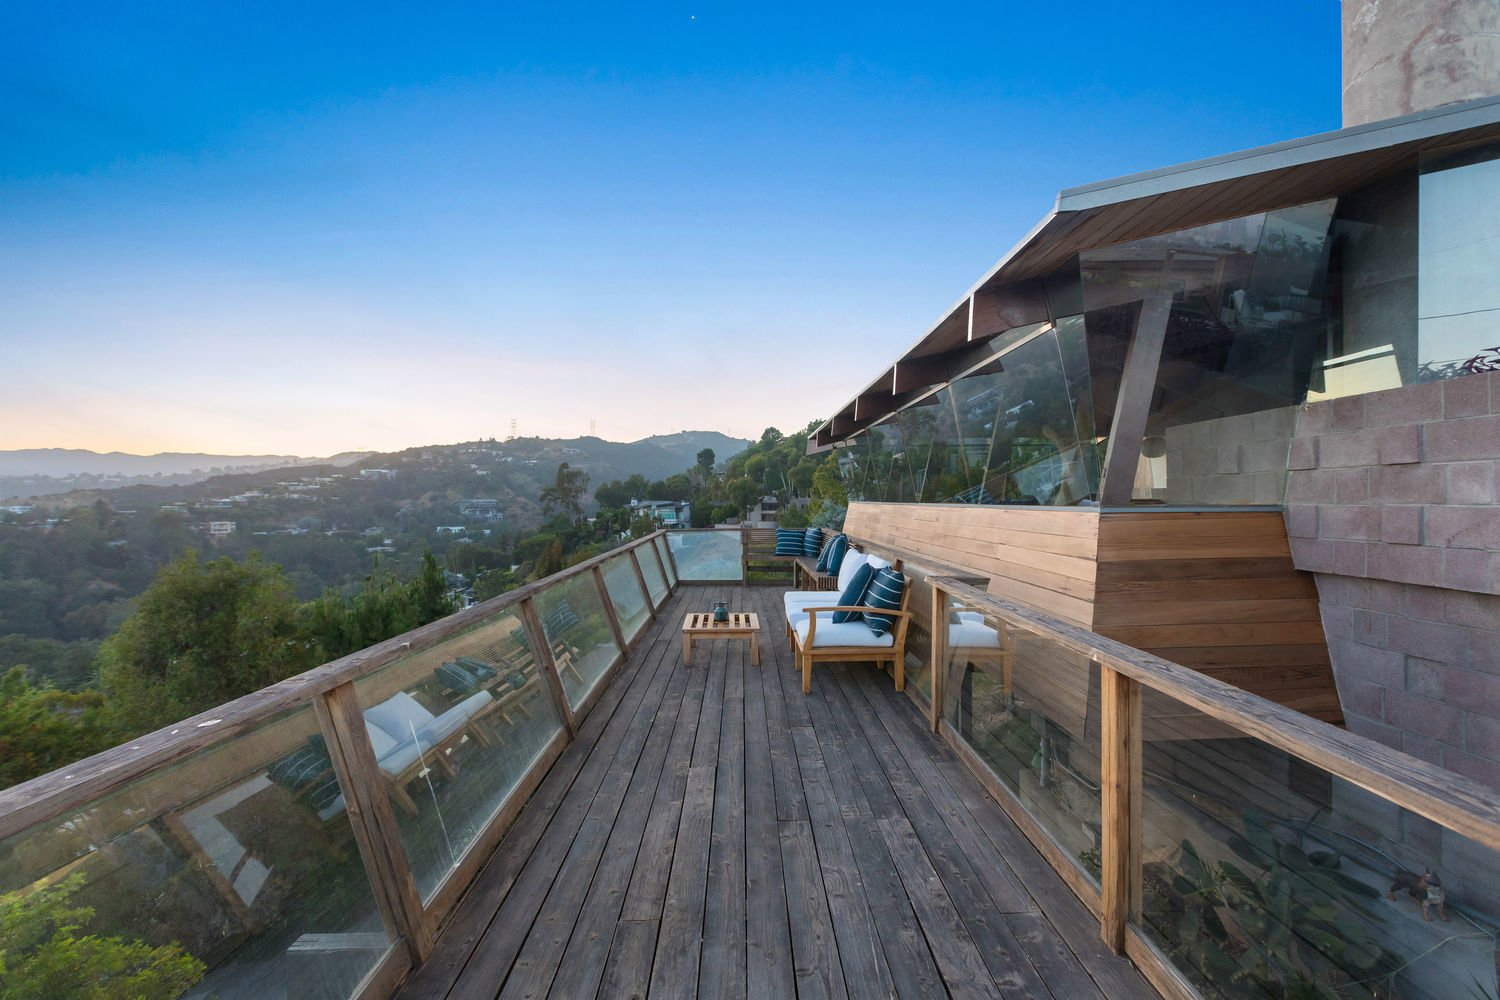 The Shneidman House 925 Stonehill Lane   A. Quincy Jones and Whitney R. Smith Los Angeles Real Estate Brentwood